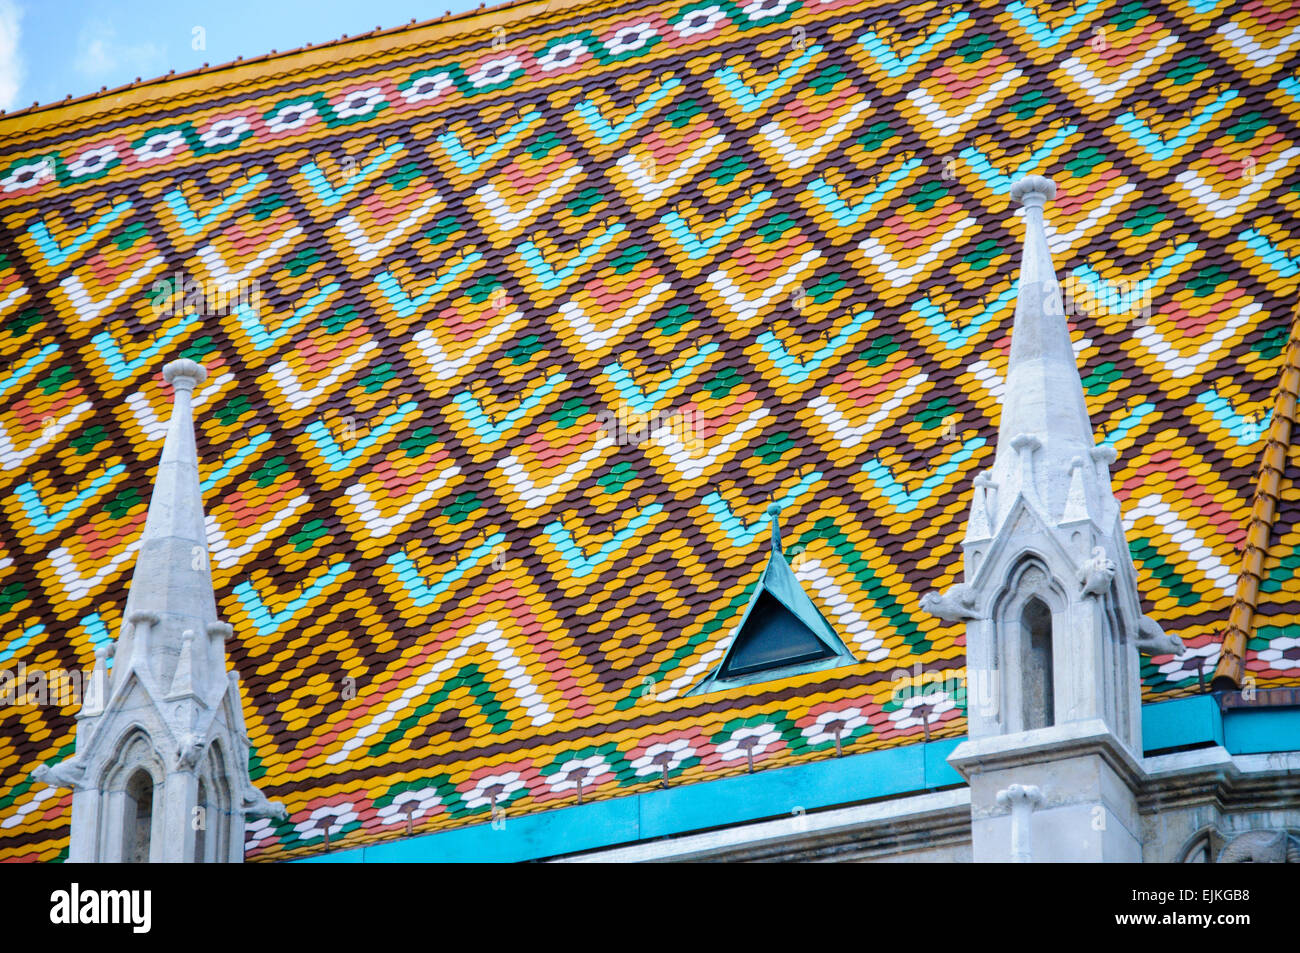 Colourful roof tiles of the Market Hall, Budapest Stock Photo